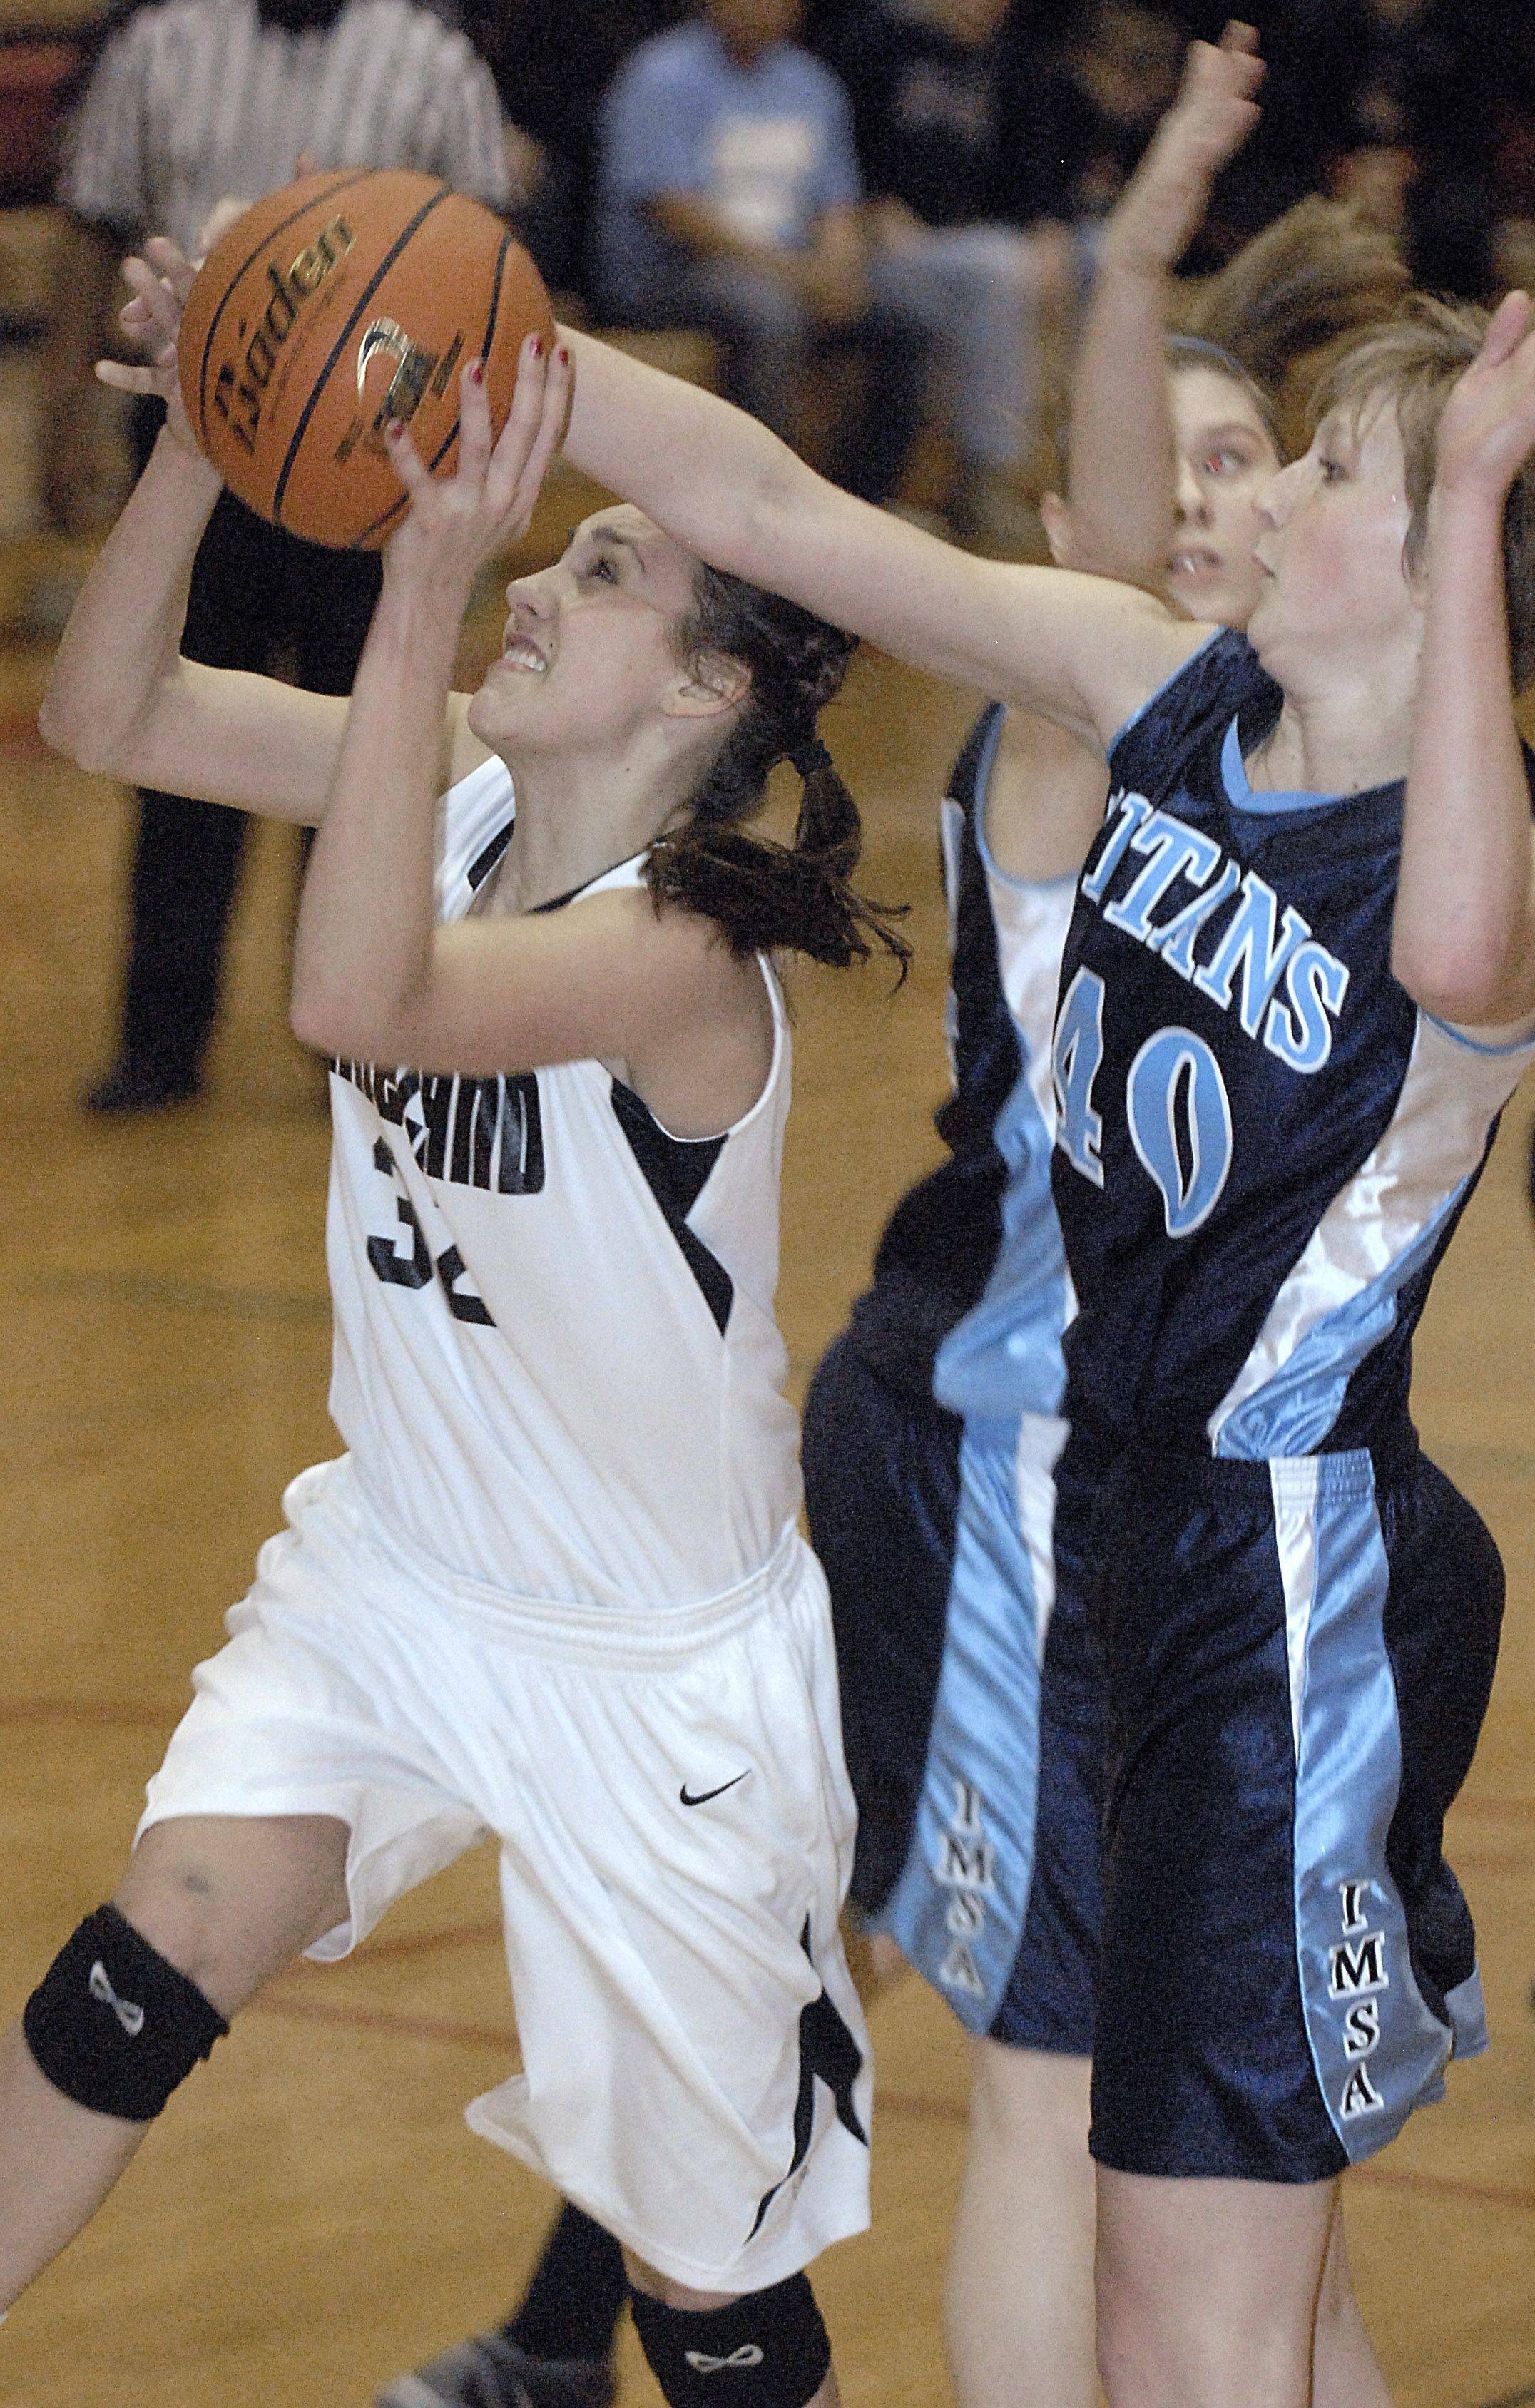 IMSA's Michaela Edgers blocks a shot by Kaneland's Emma Bradford in the second quarter of regional game on Wednesday, February 15.